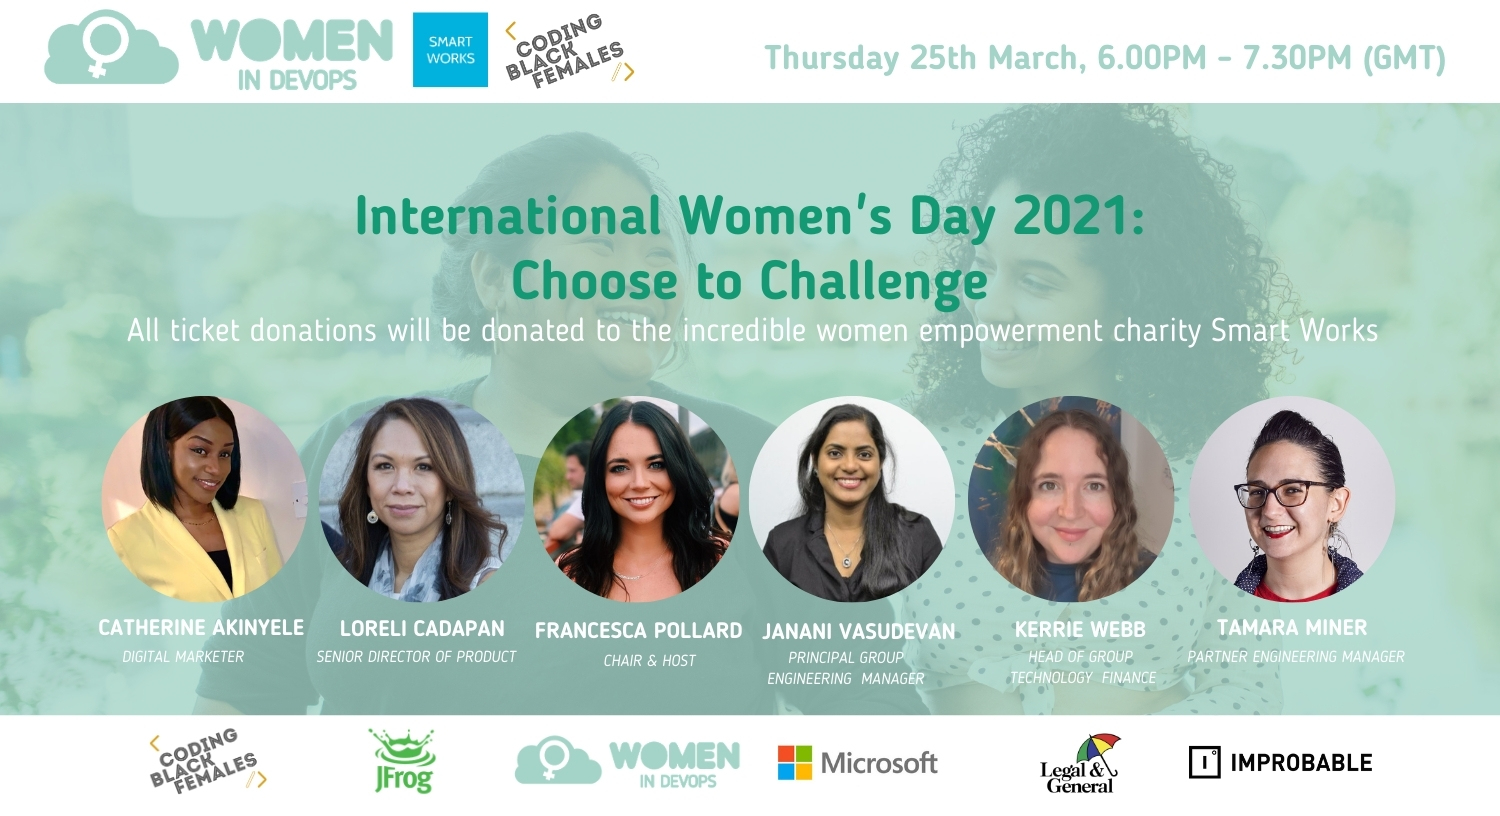 Webinar #12 - International Women's Day 2021: Choose to Challenge